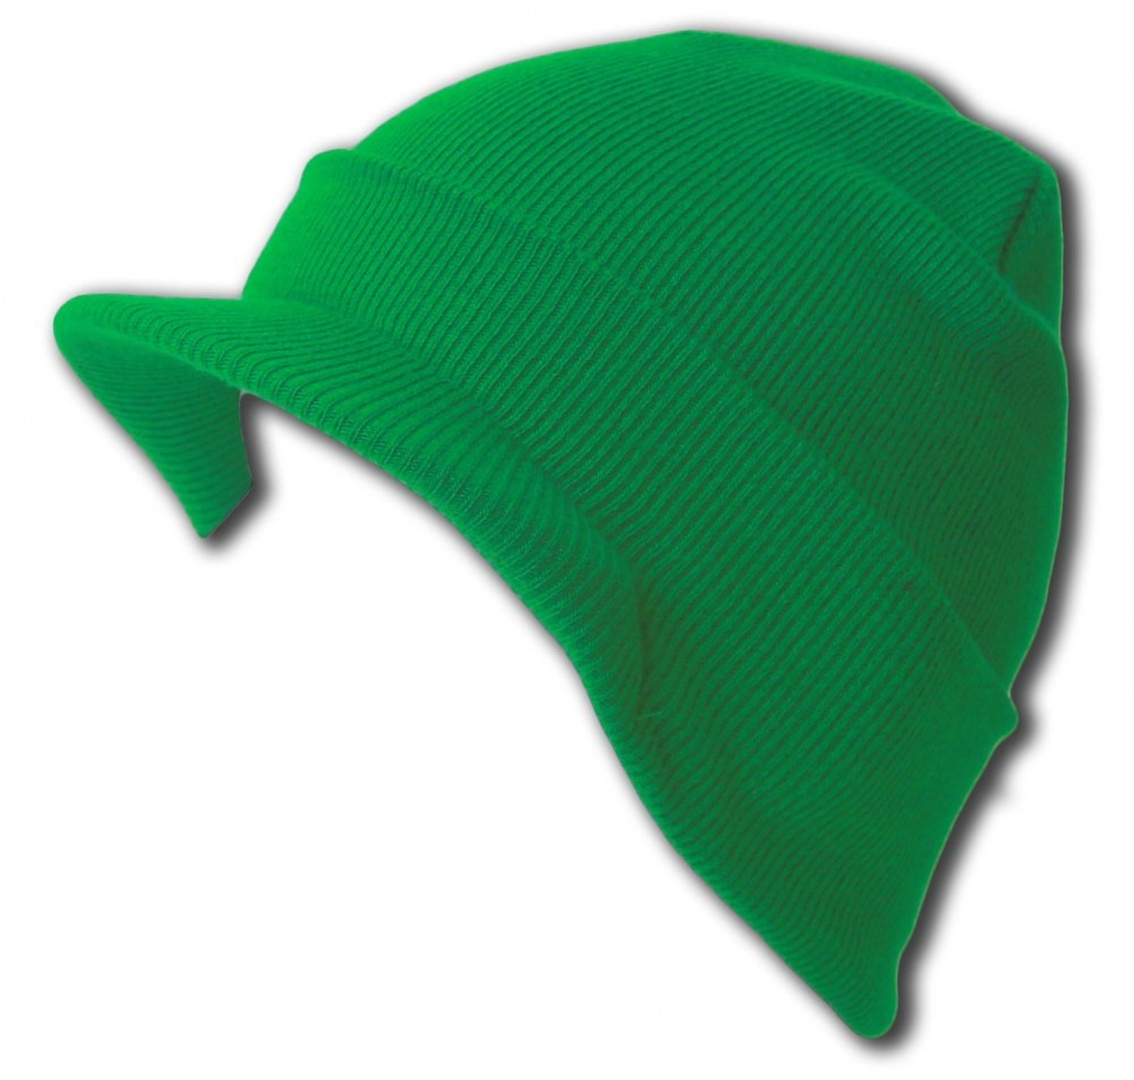 ad060980f5d Visor Beanie Sports   Outdoors  Buy Online from Fishpond.co.nz